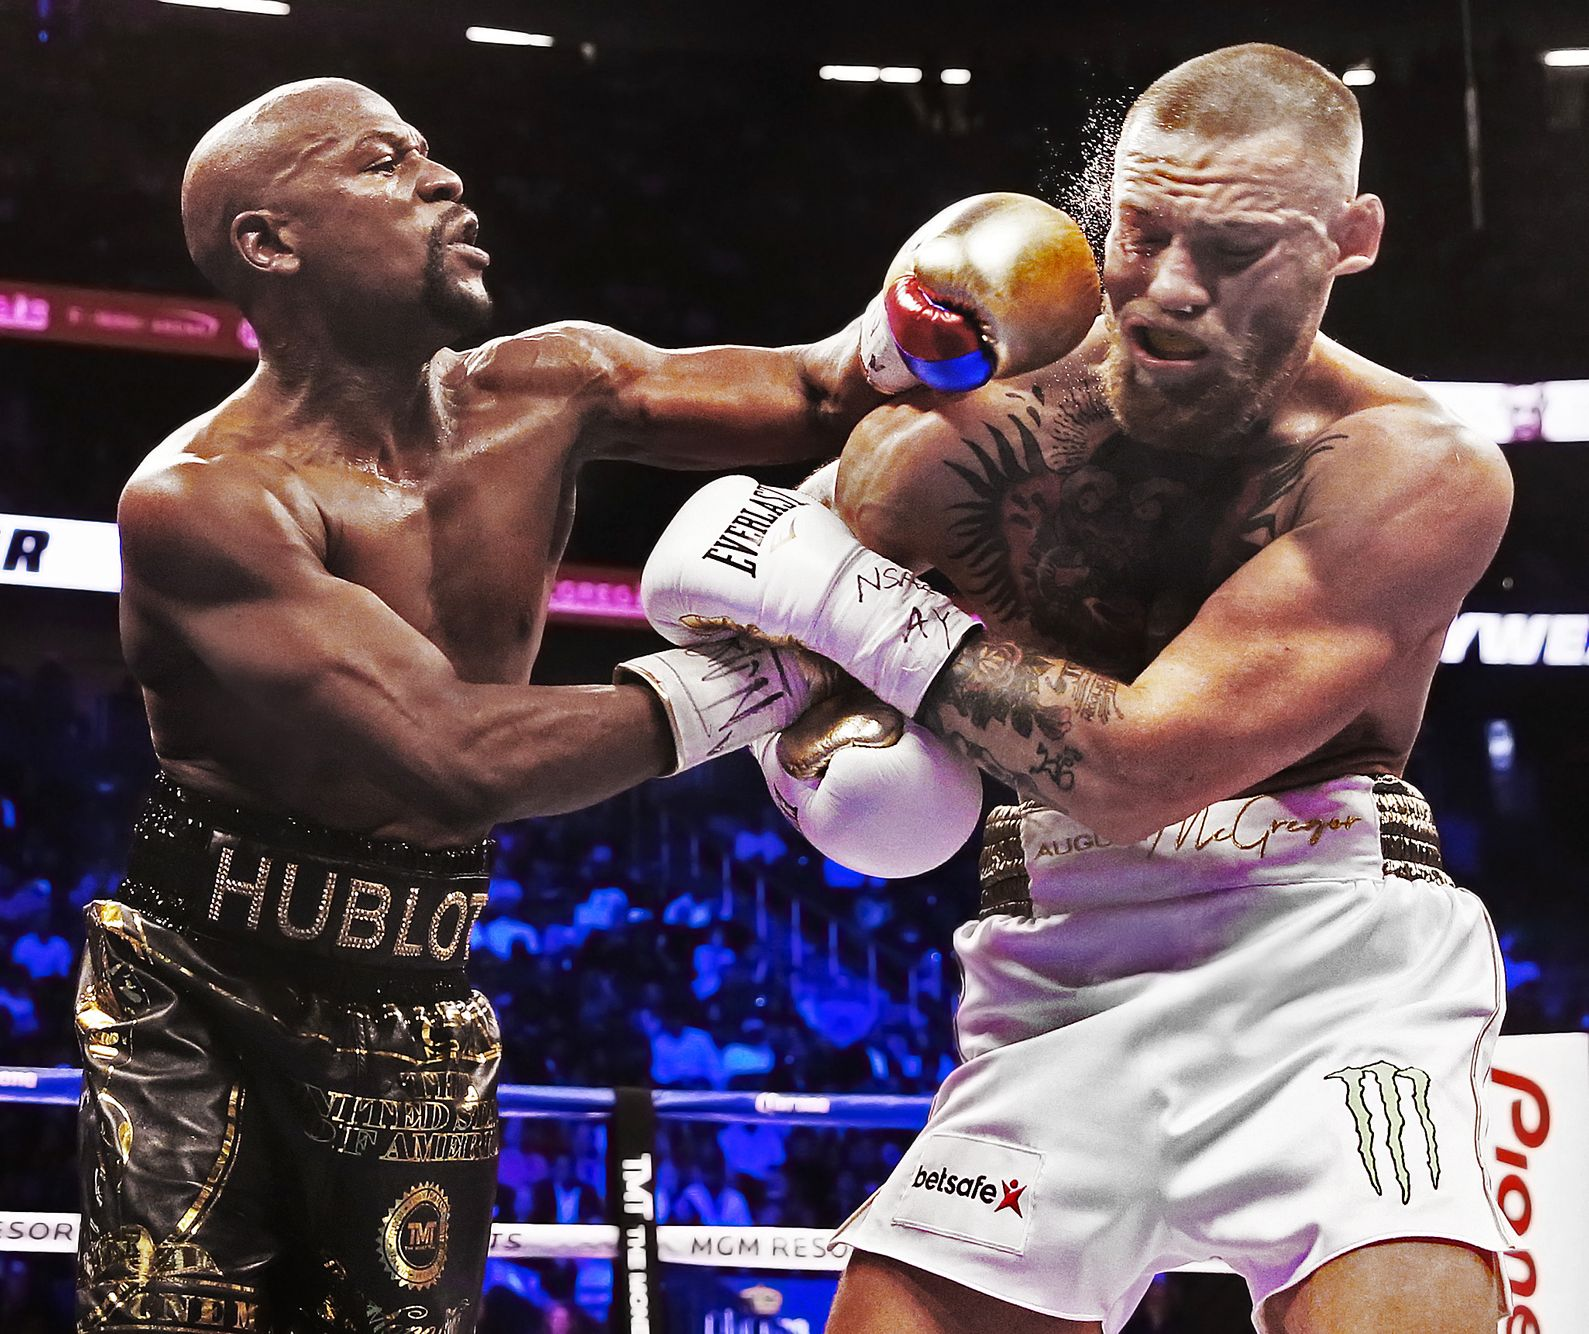 BOX-MAYWEATHER-AUG27-17-bh- 039.jpg